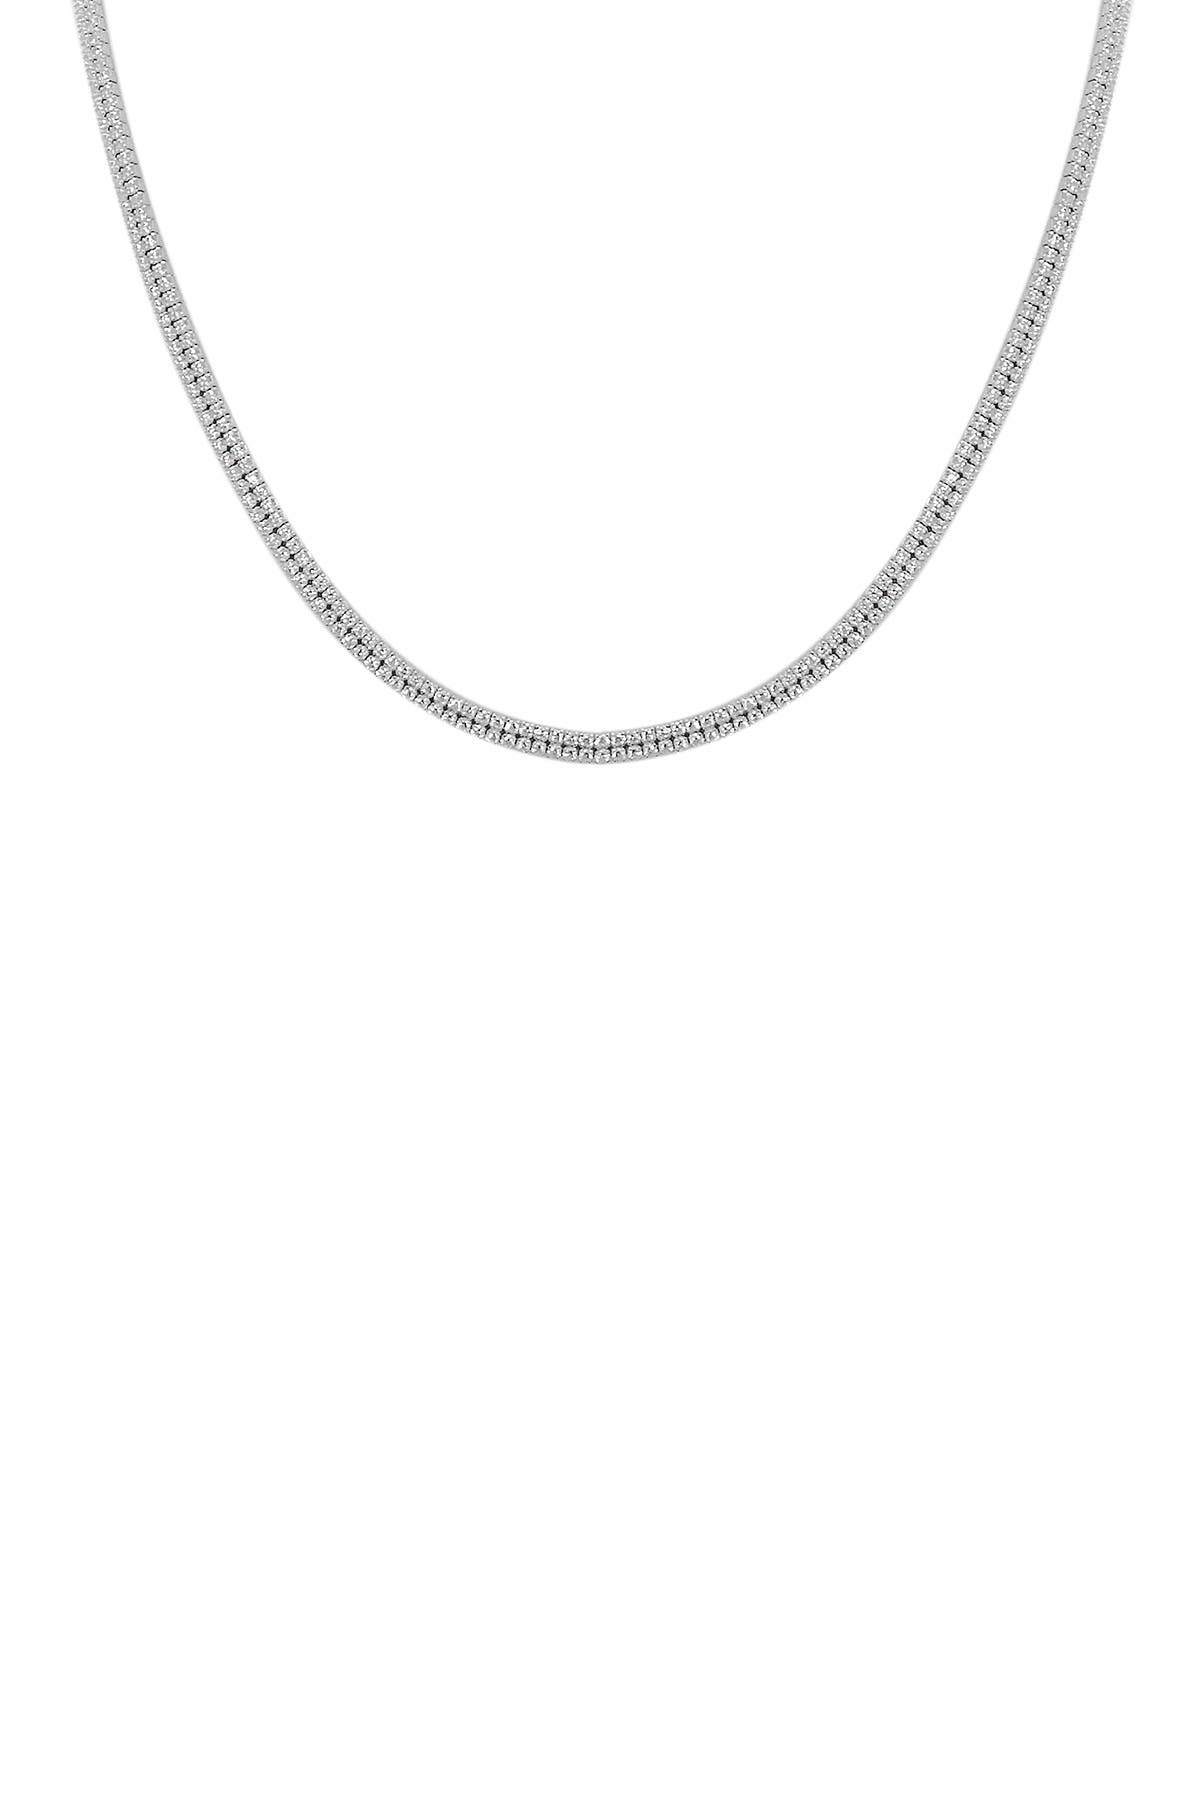 Image of Savvy Cie Sterling Silver Double Row Pave CZ Choker Necklace